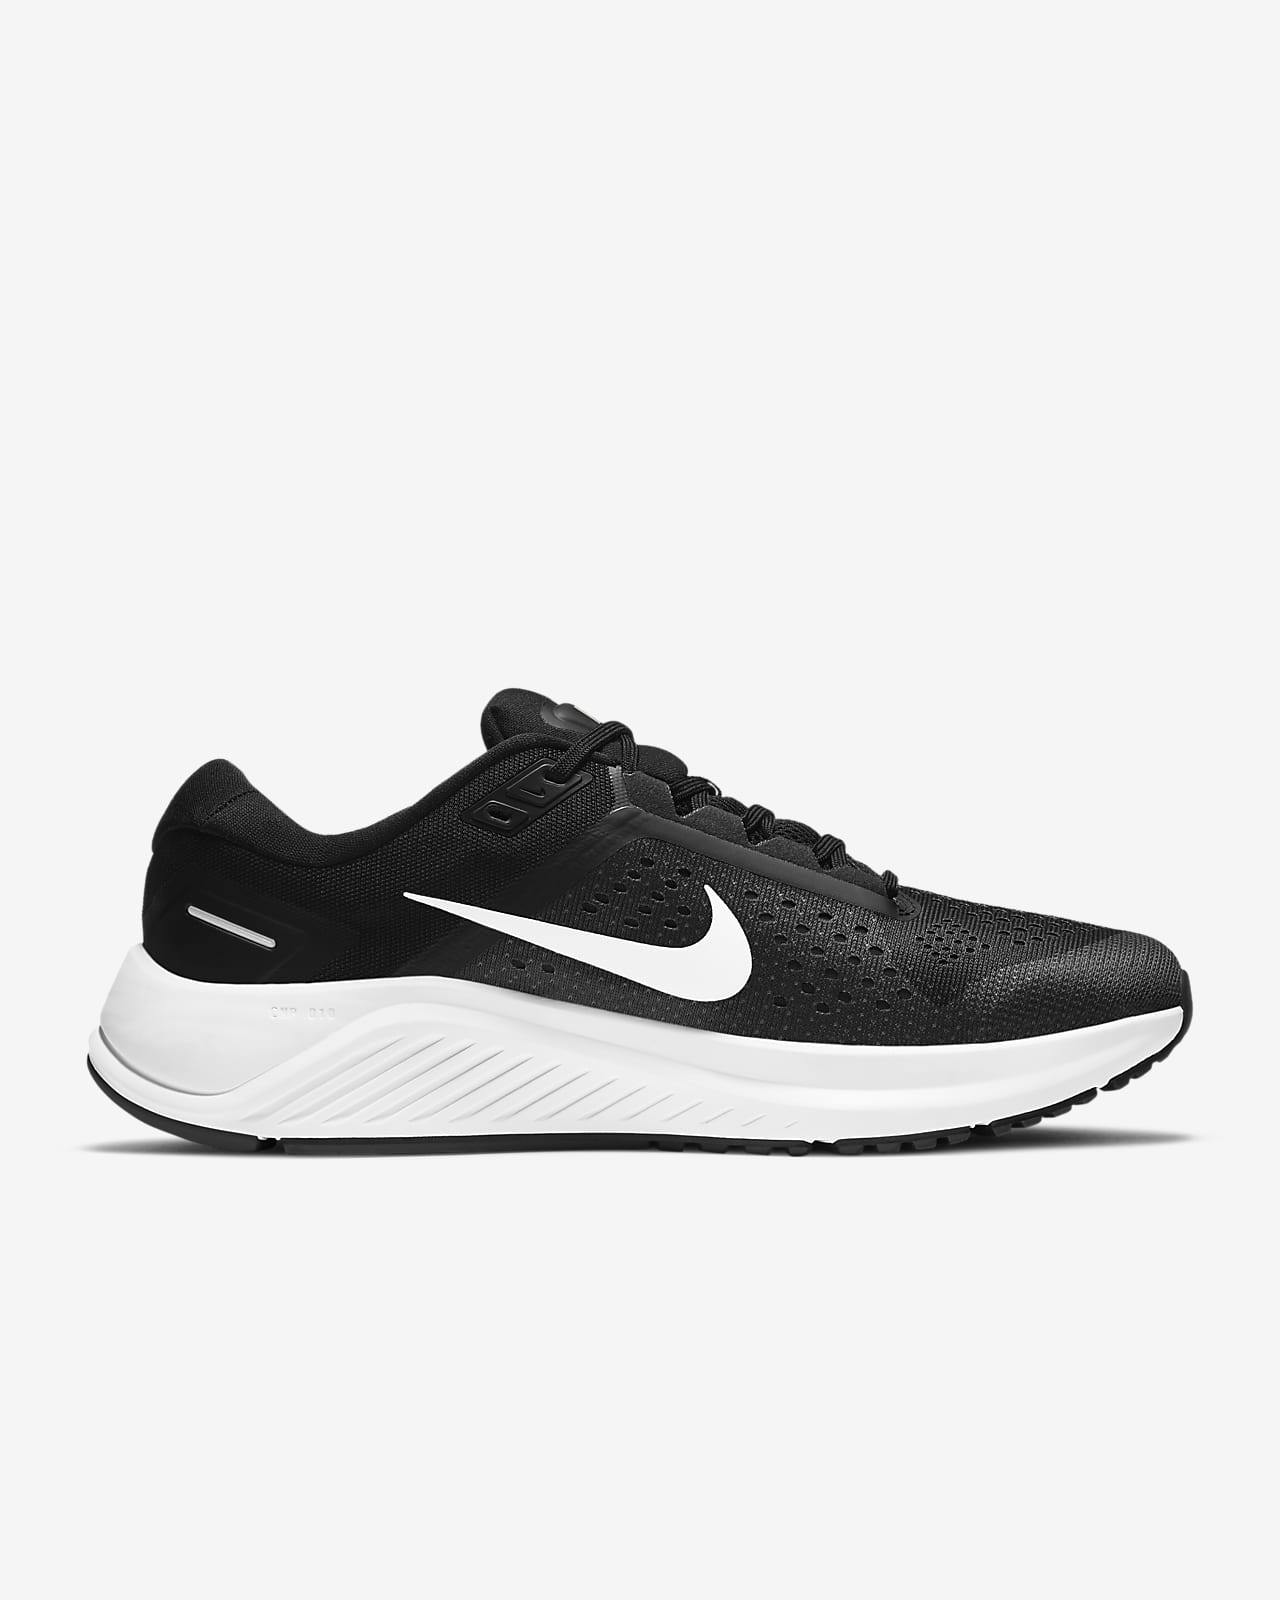 Nike Air Zoom Structure 23 Men's